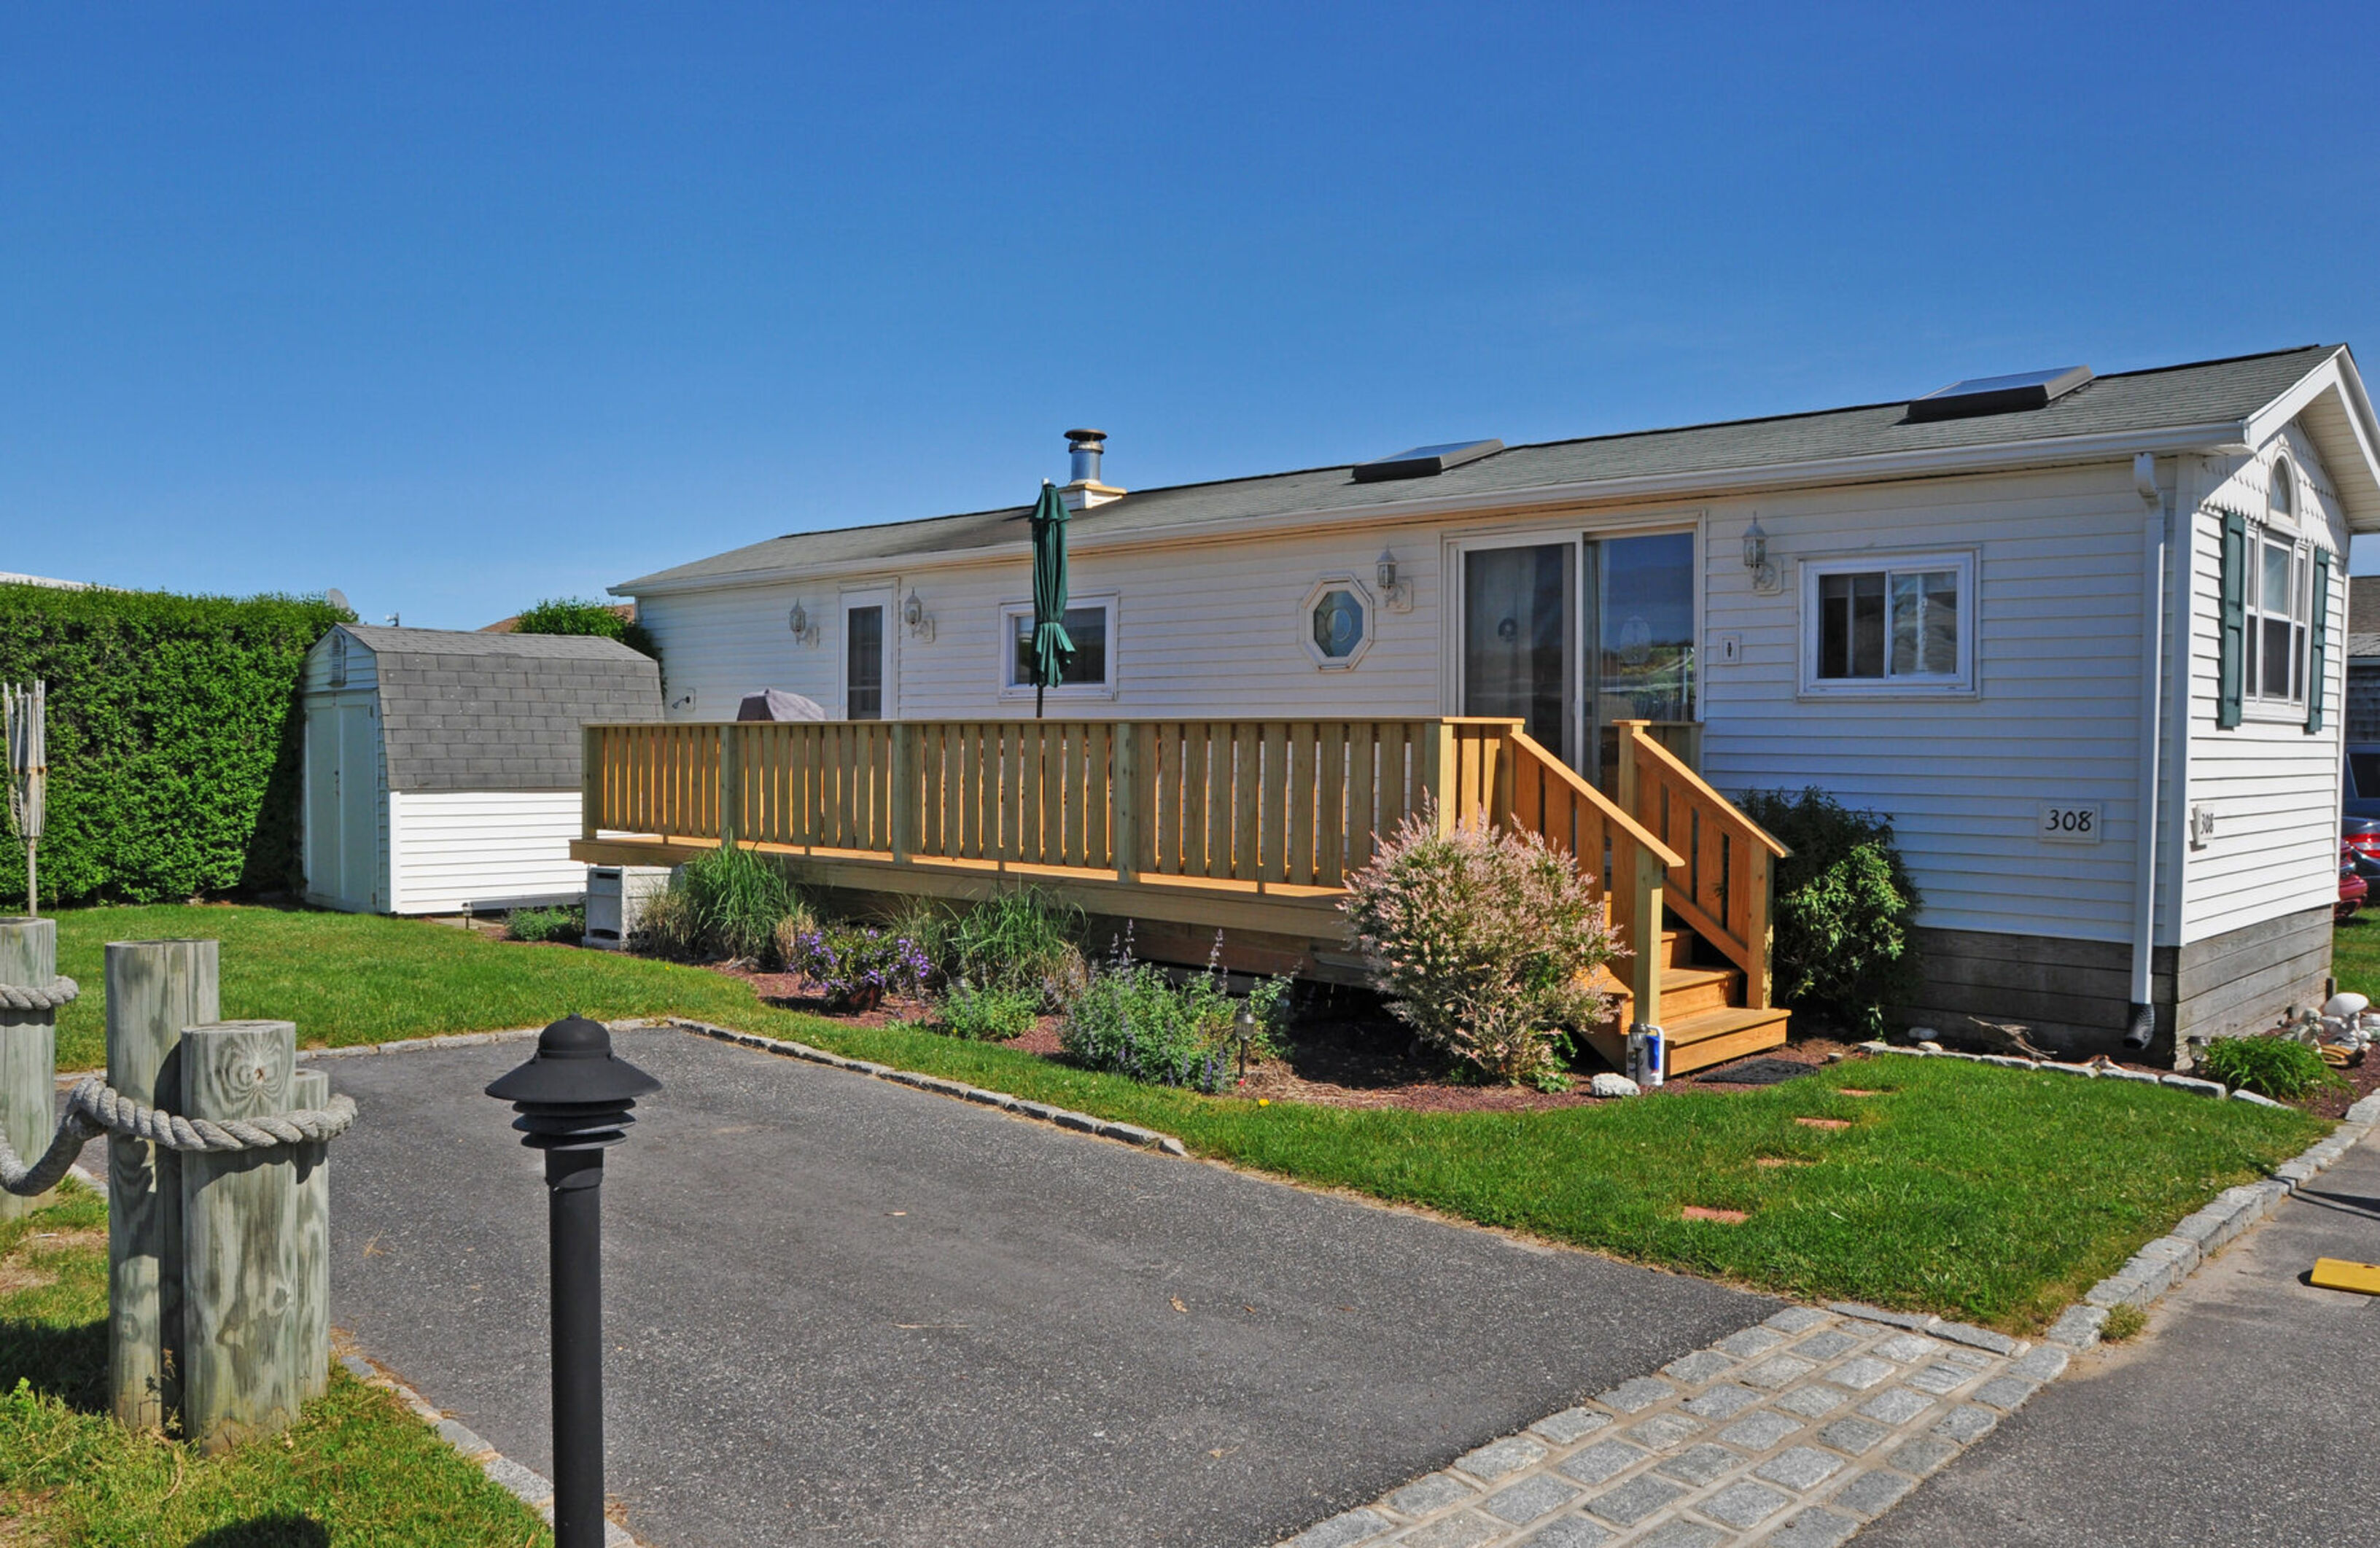 100 Deforest Rd Unit 308 - Montauk, New York